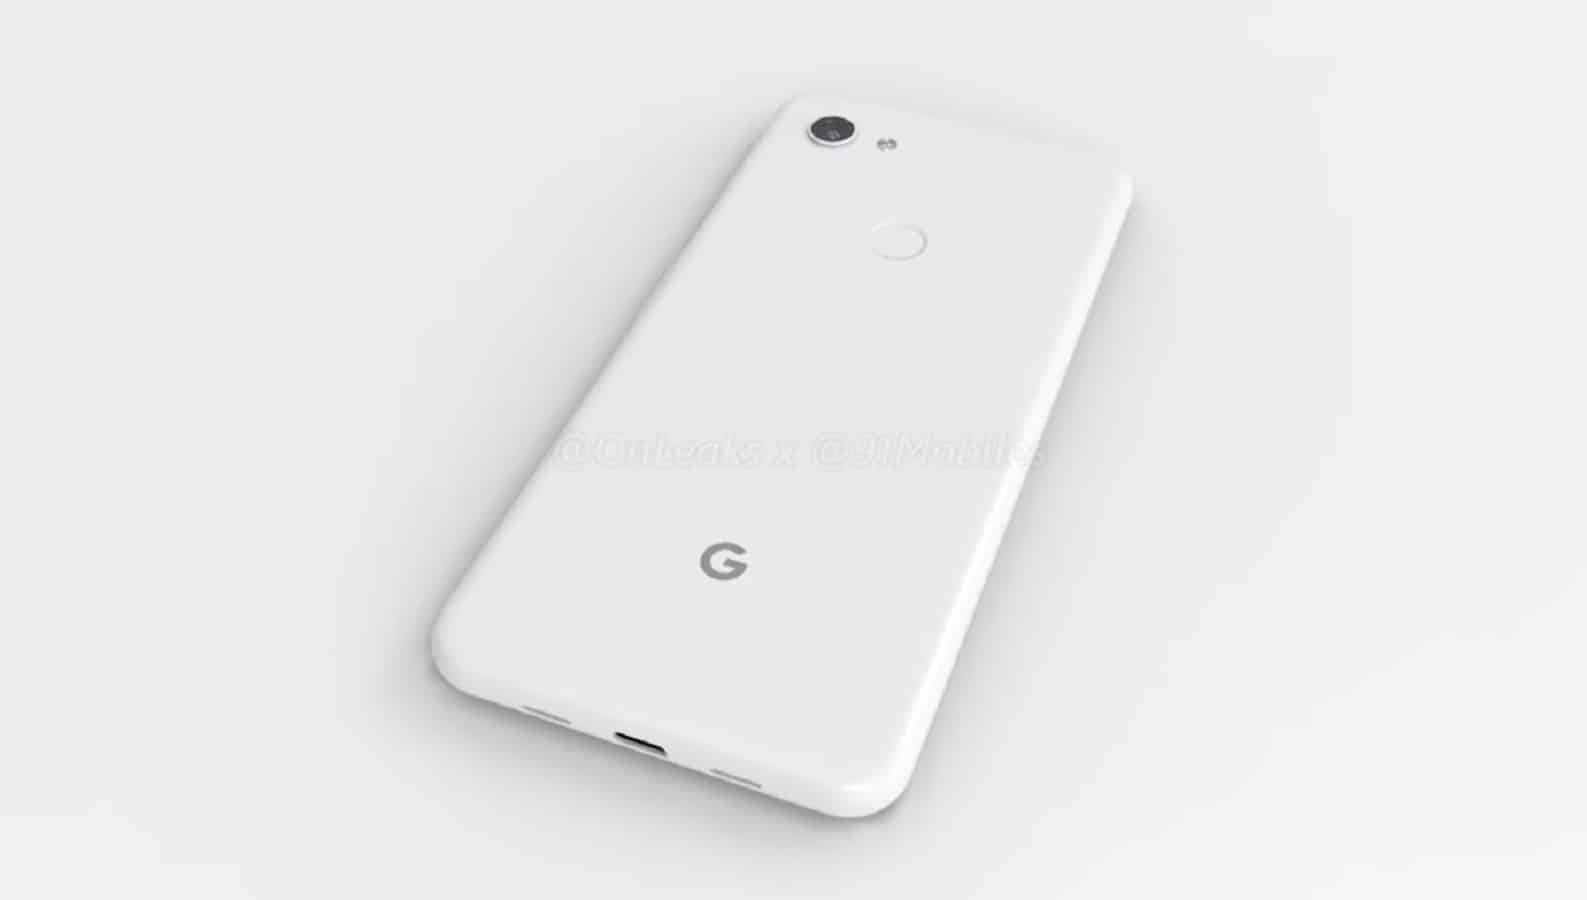 google pixel 3a mockup shown on a white table